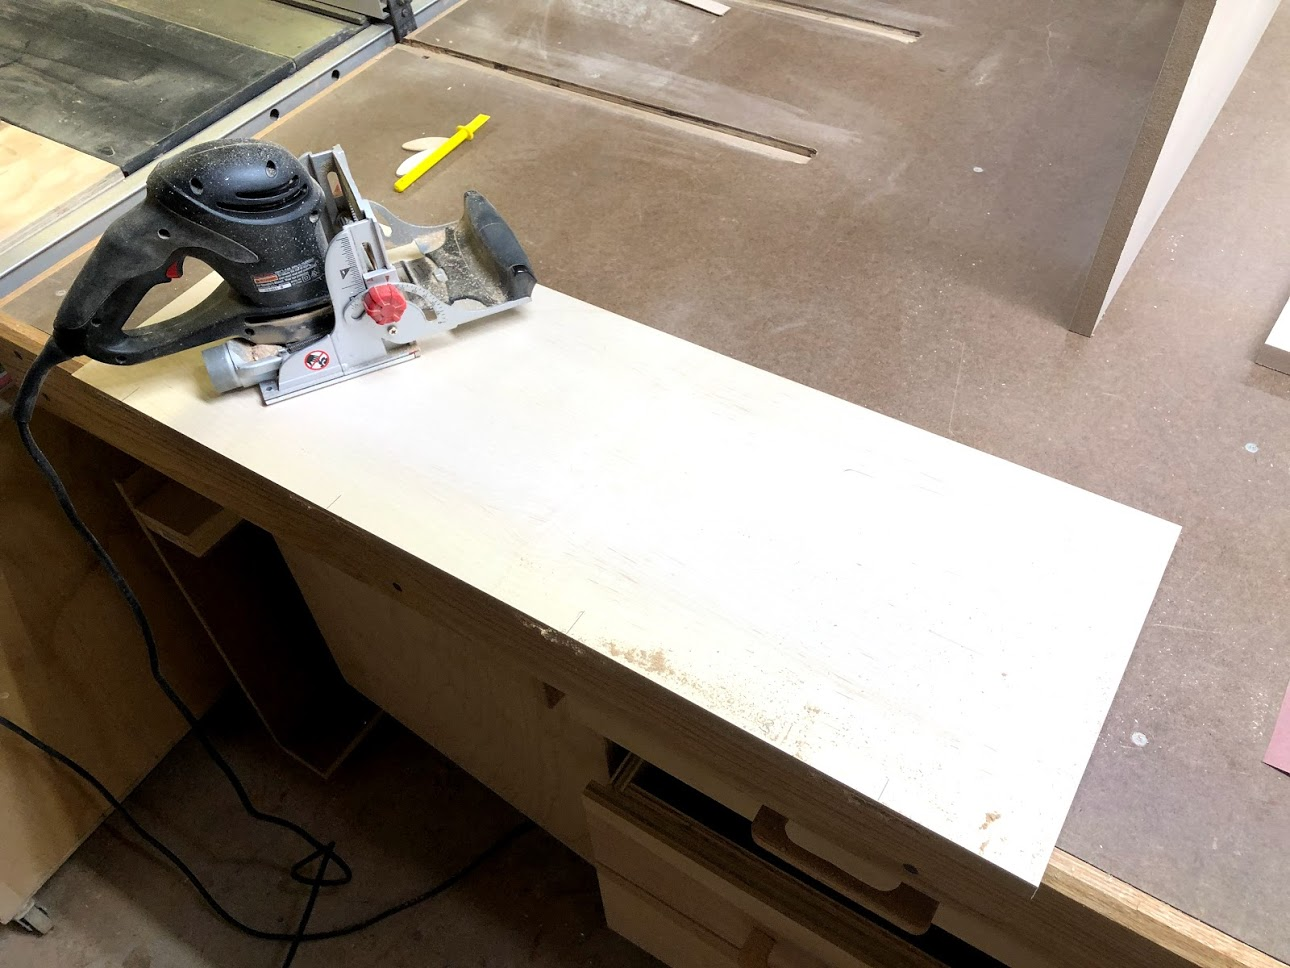 Here is my craftsman biscuit jointer I use this machine almost exclusively when edge banding.